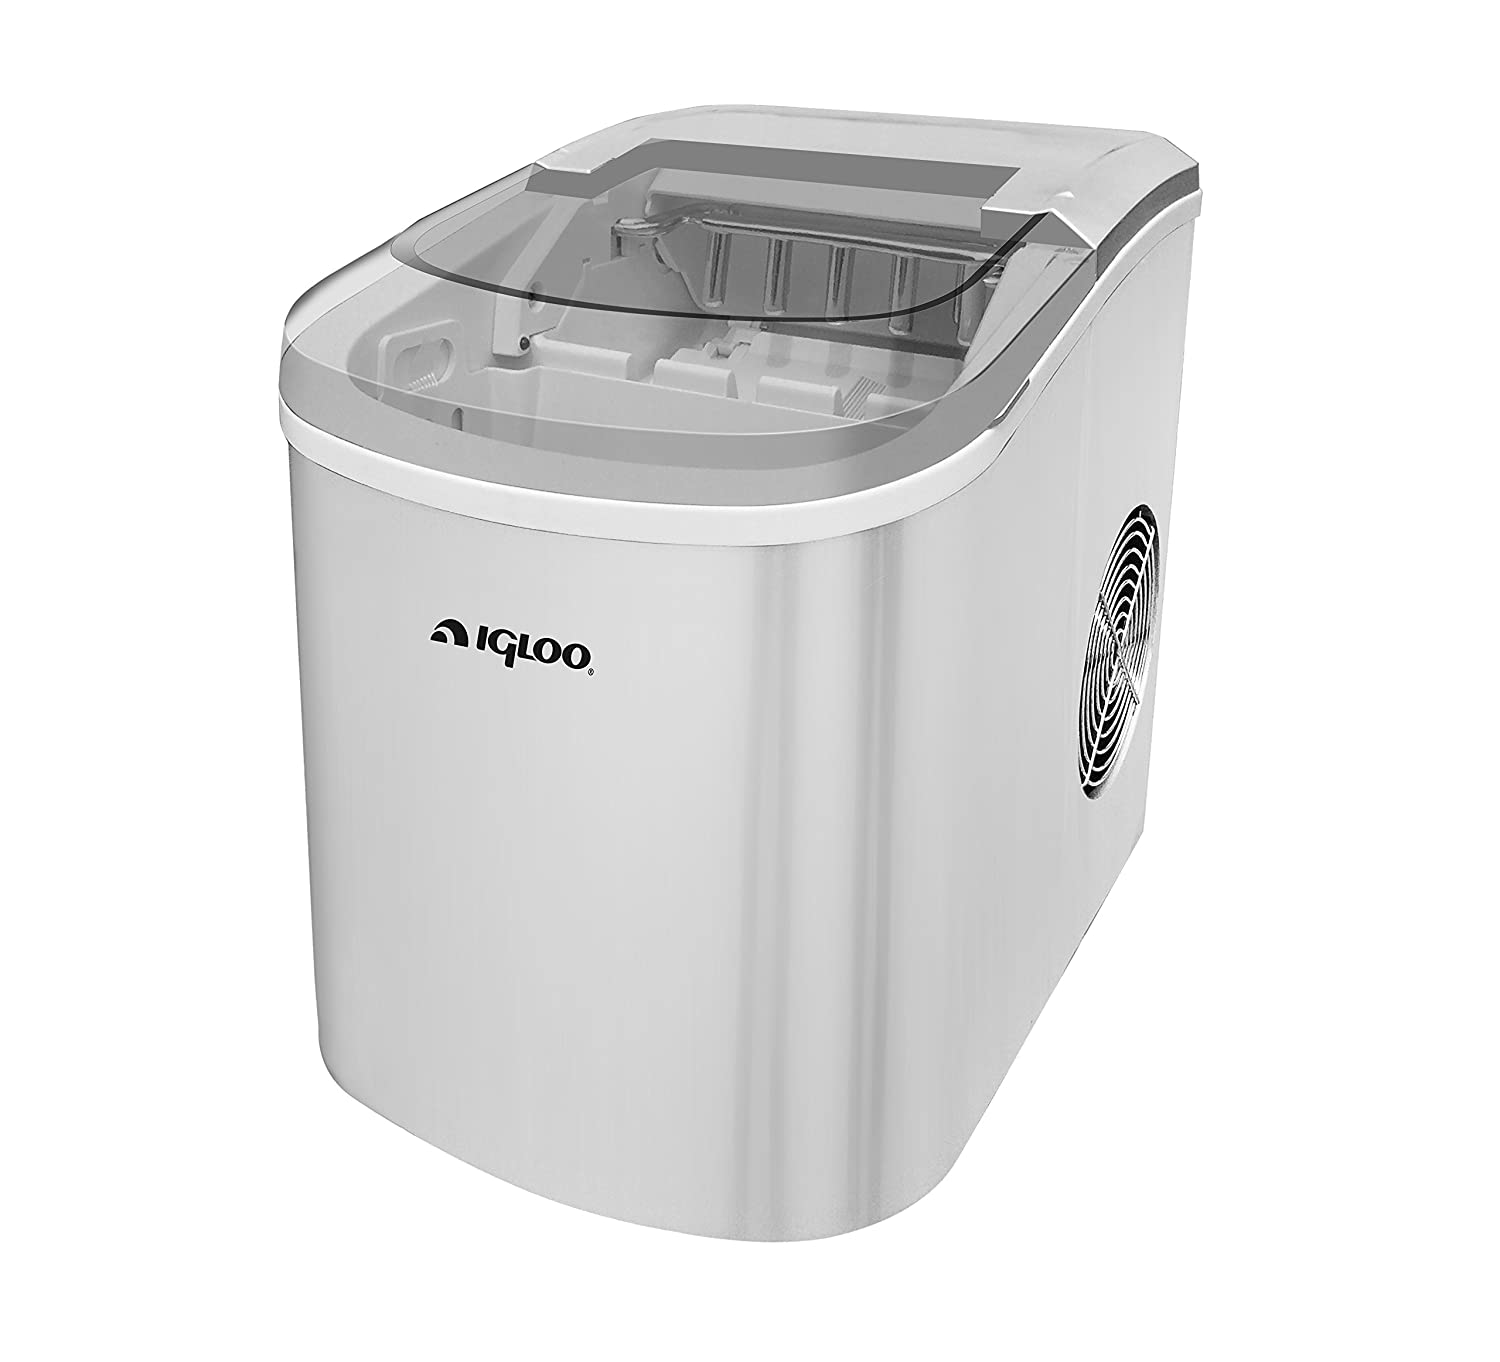 Igloo ICE206 Counter Top Compact Ice Maker, Silver, with See-through Lid